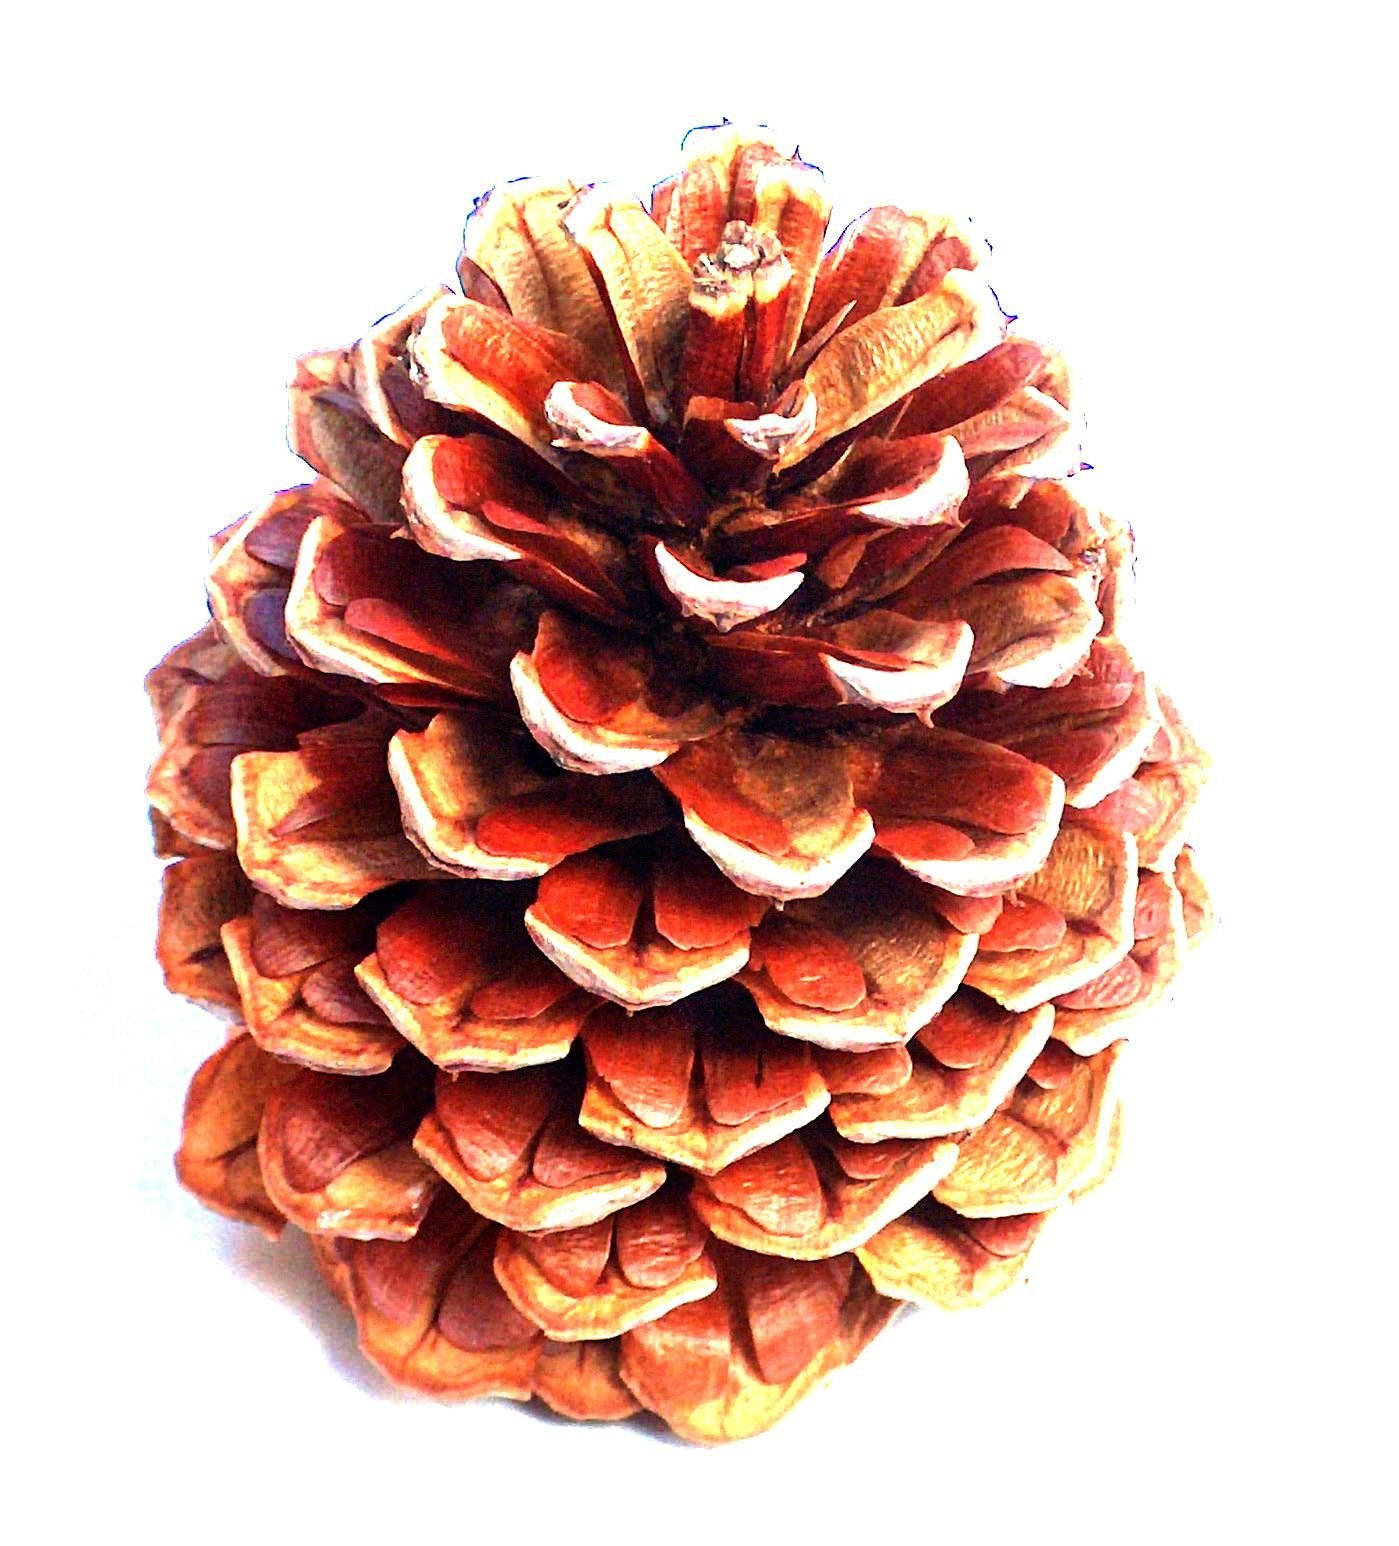 24 Pine Cones 3 To 4 Inch Tall : 2 to 3 Inch Wide : Grown On Pacific Ponderosa Pine Trees In Oregon